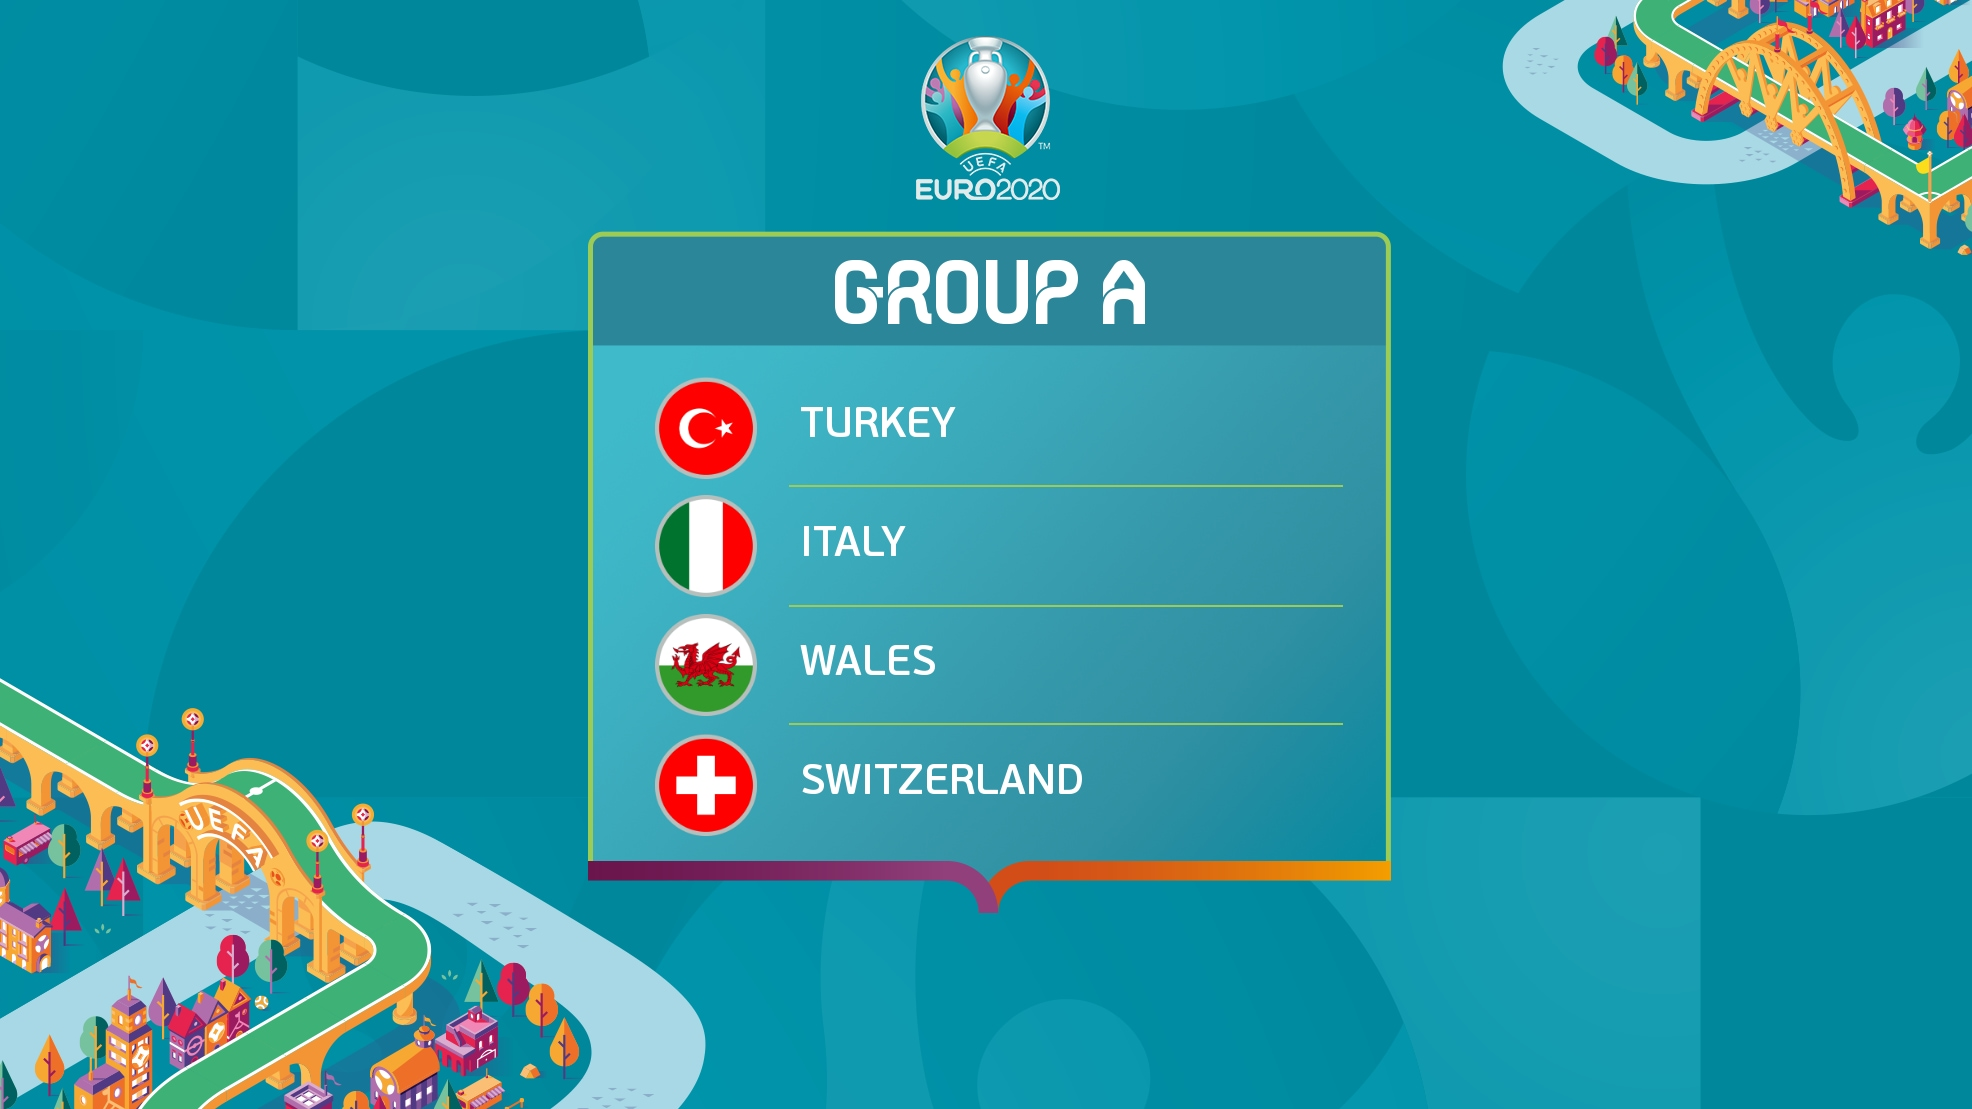 Group A guide